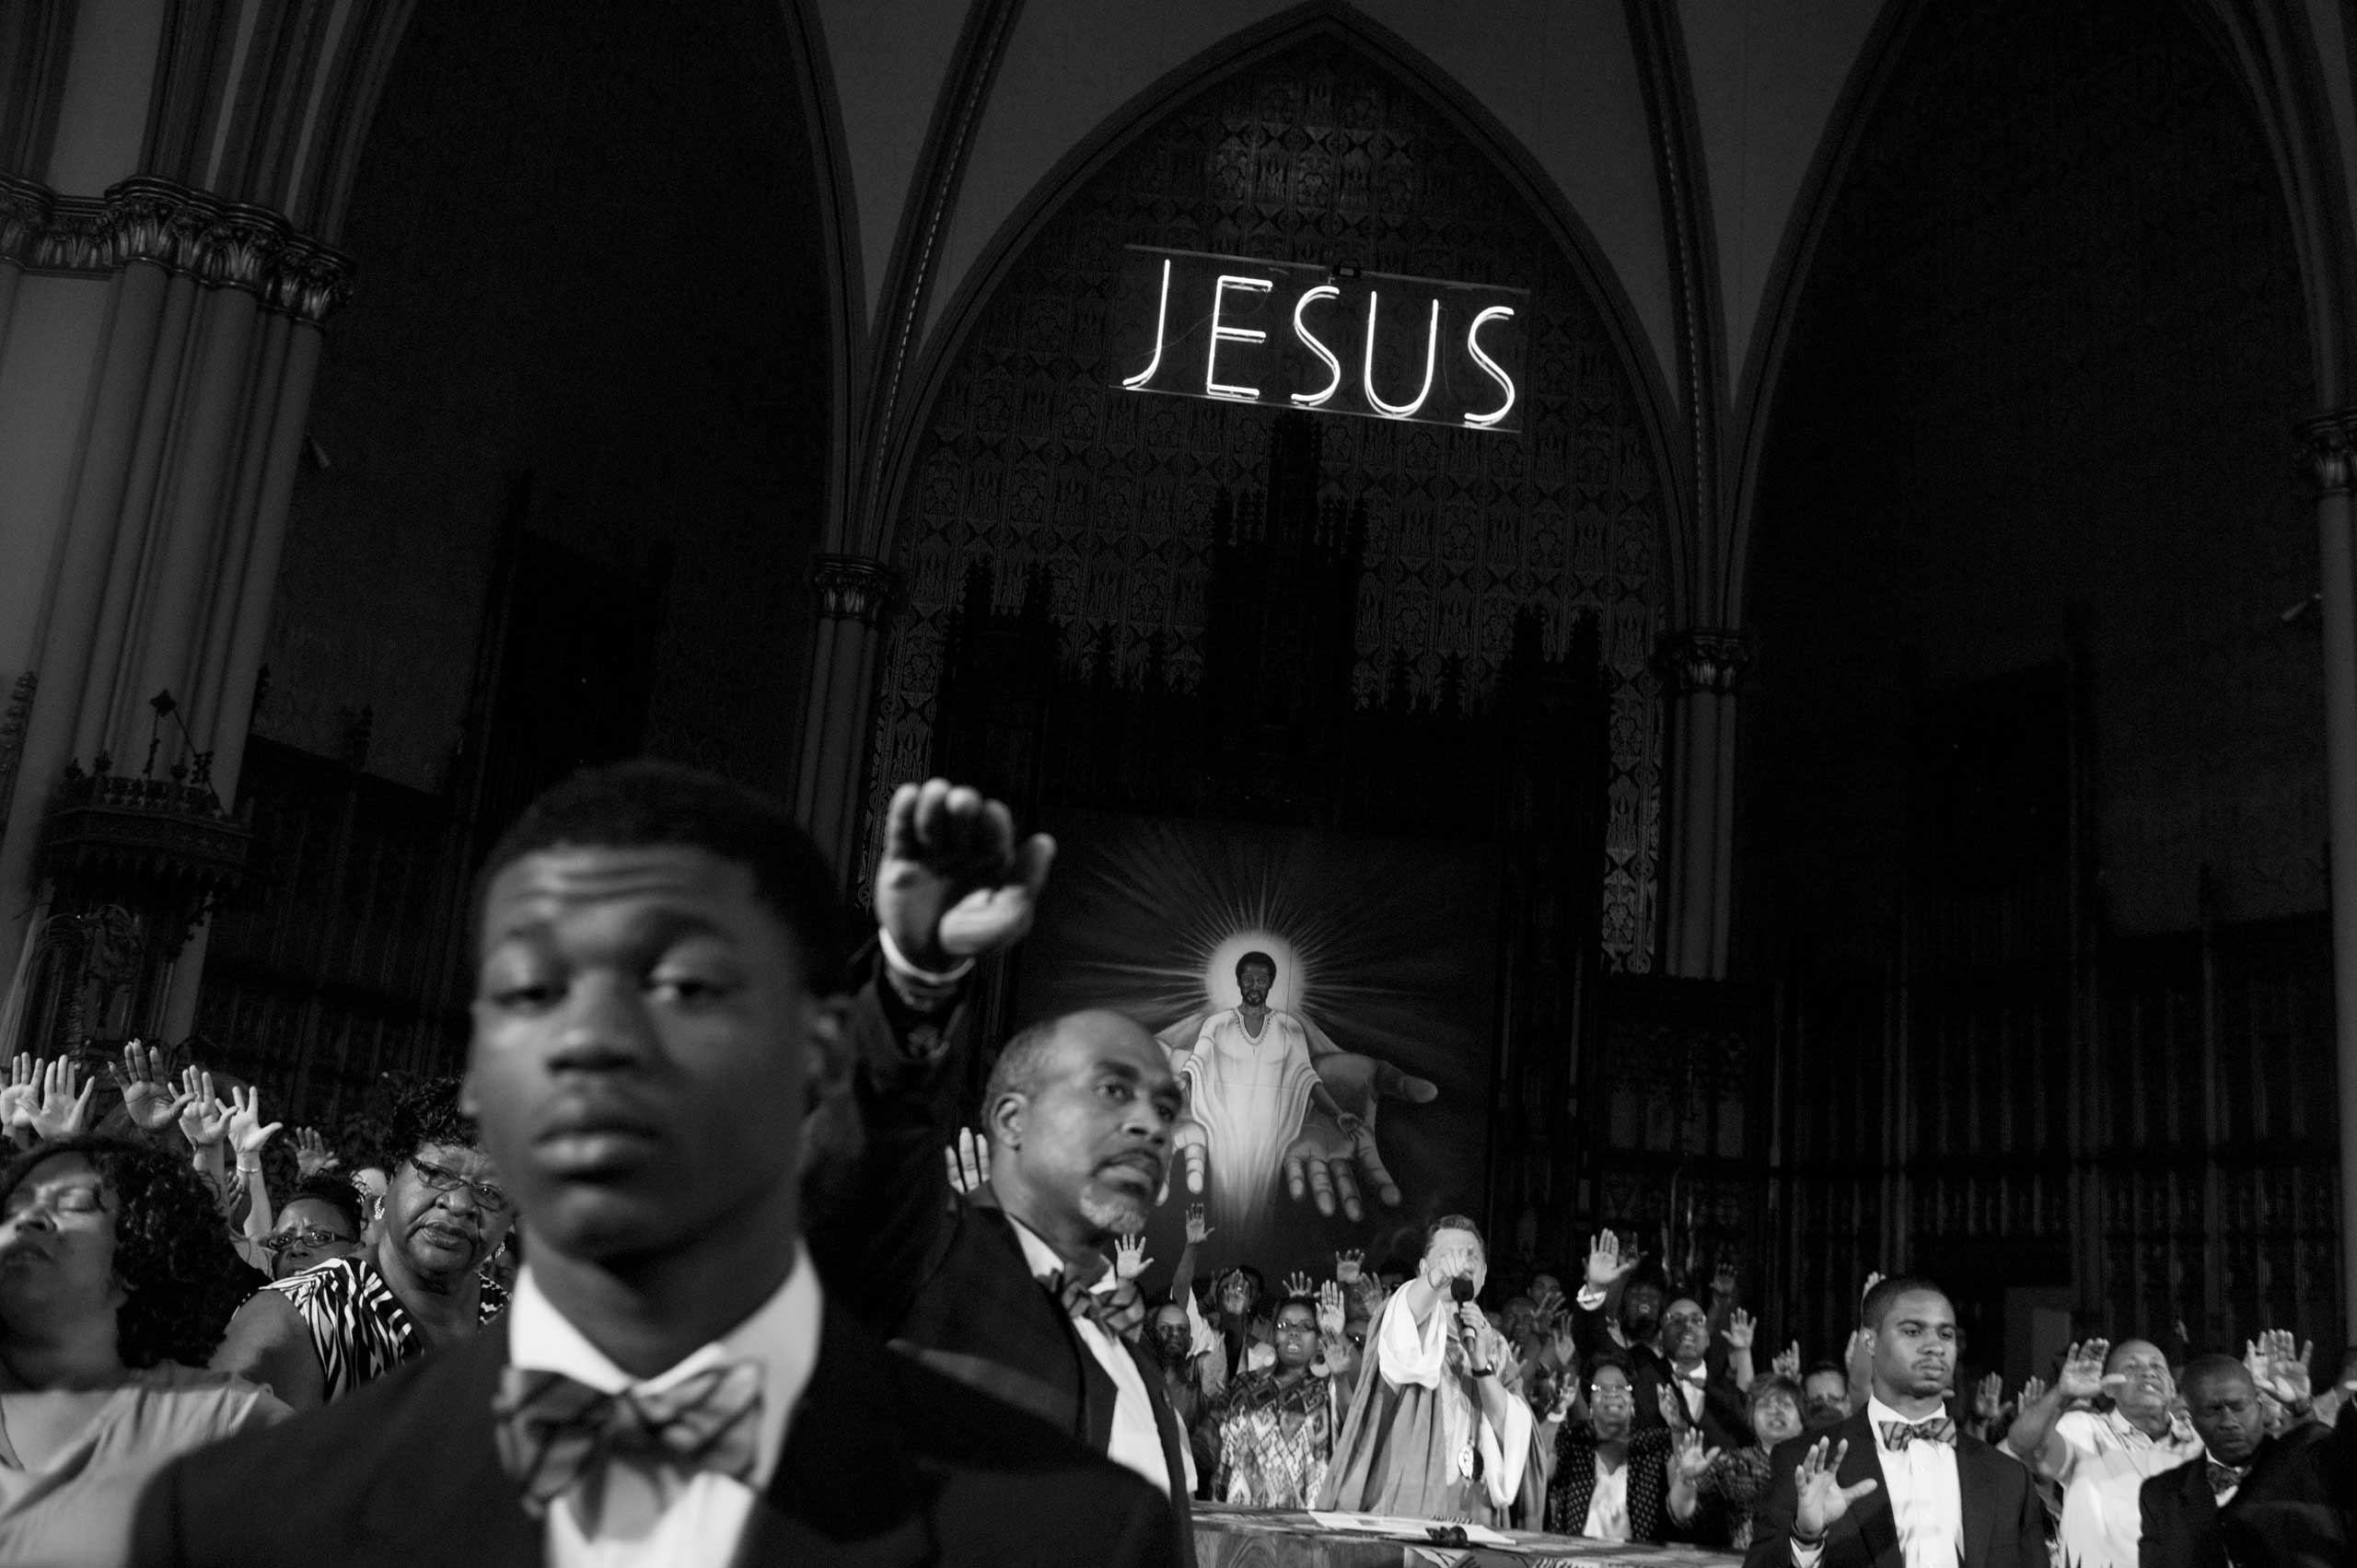 Members of St. Sabina Church in the Auburn Gresham neighborhood pray to end violence in Chicago. More than 40 young people have been murdered in the neighborhood since 2006. Auburn Gresham, Chicago, 2013.